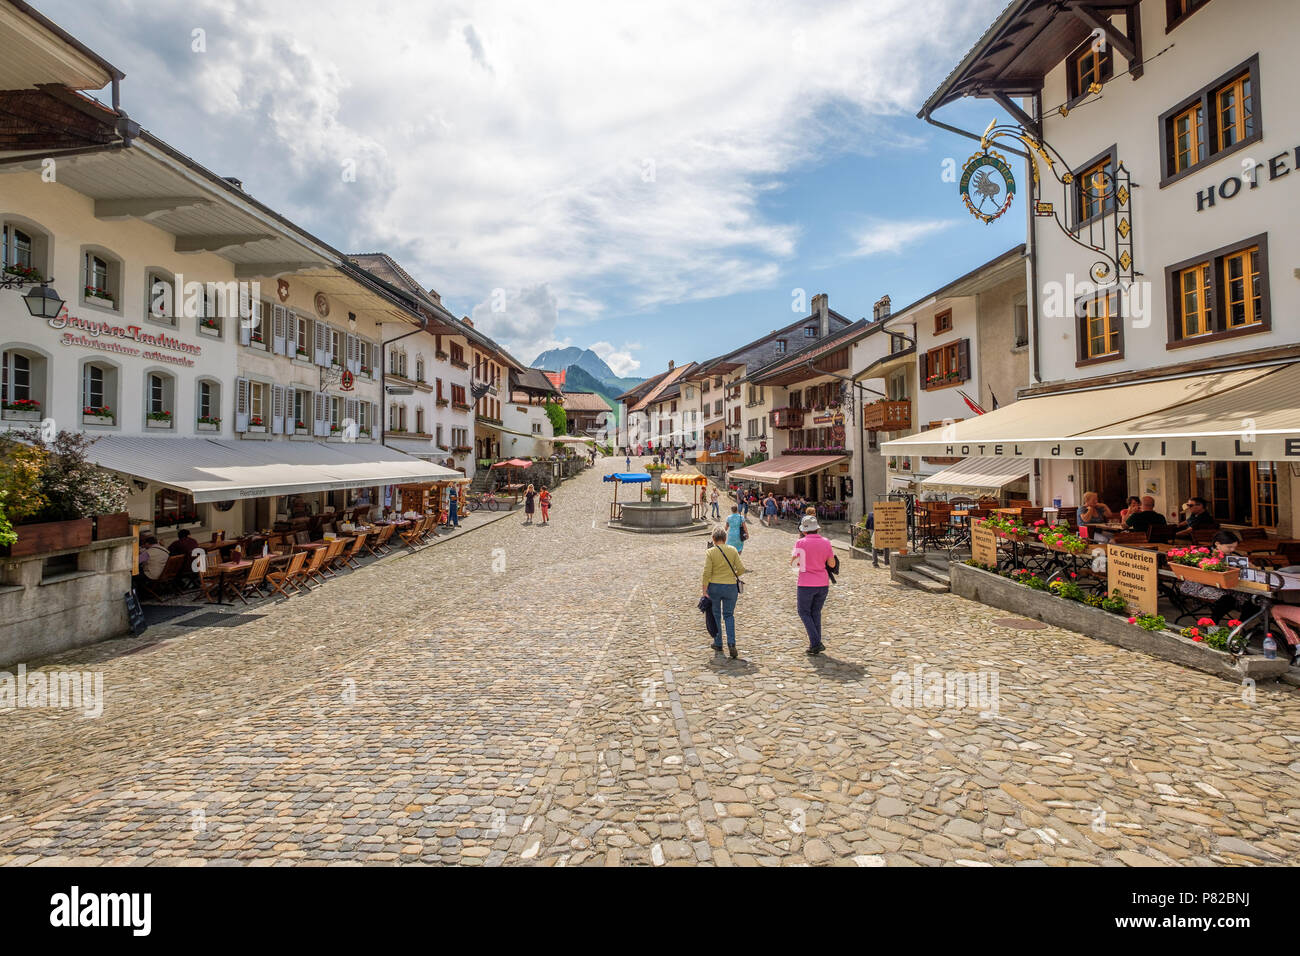 Rue de Bourg, the medieval road up to the Gruyeres Casltle. Nice restaurants and happy people. - Stock Image